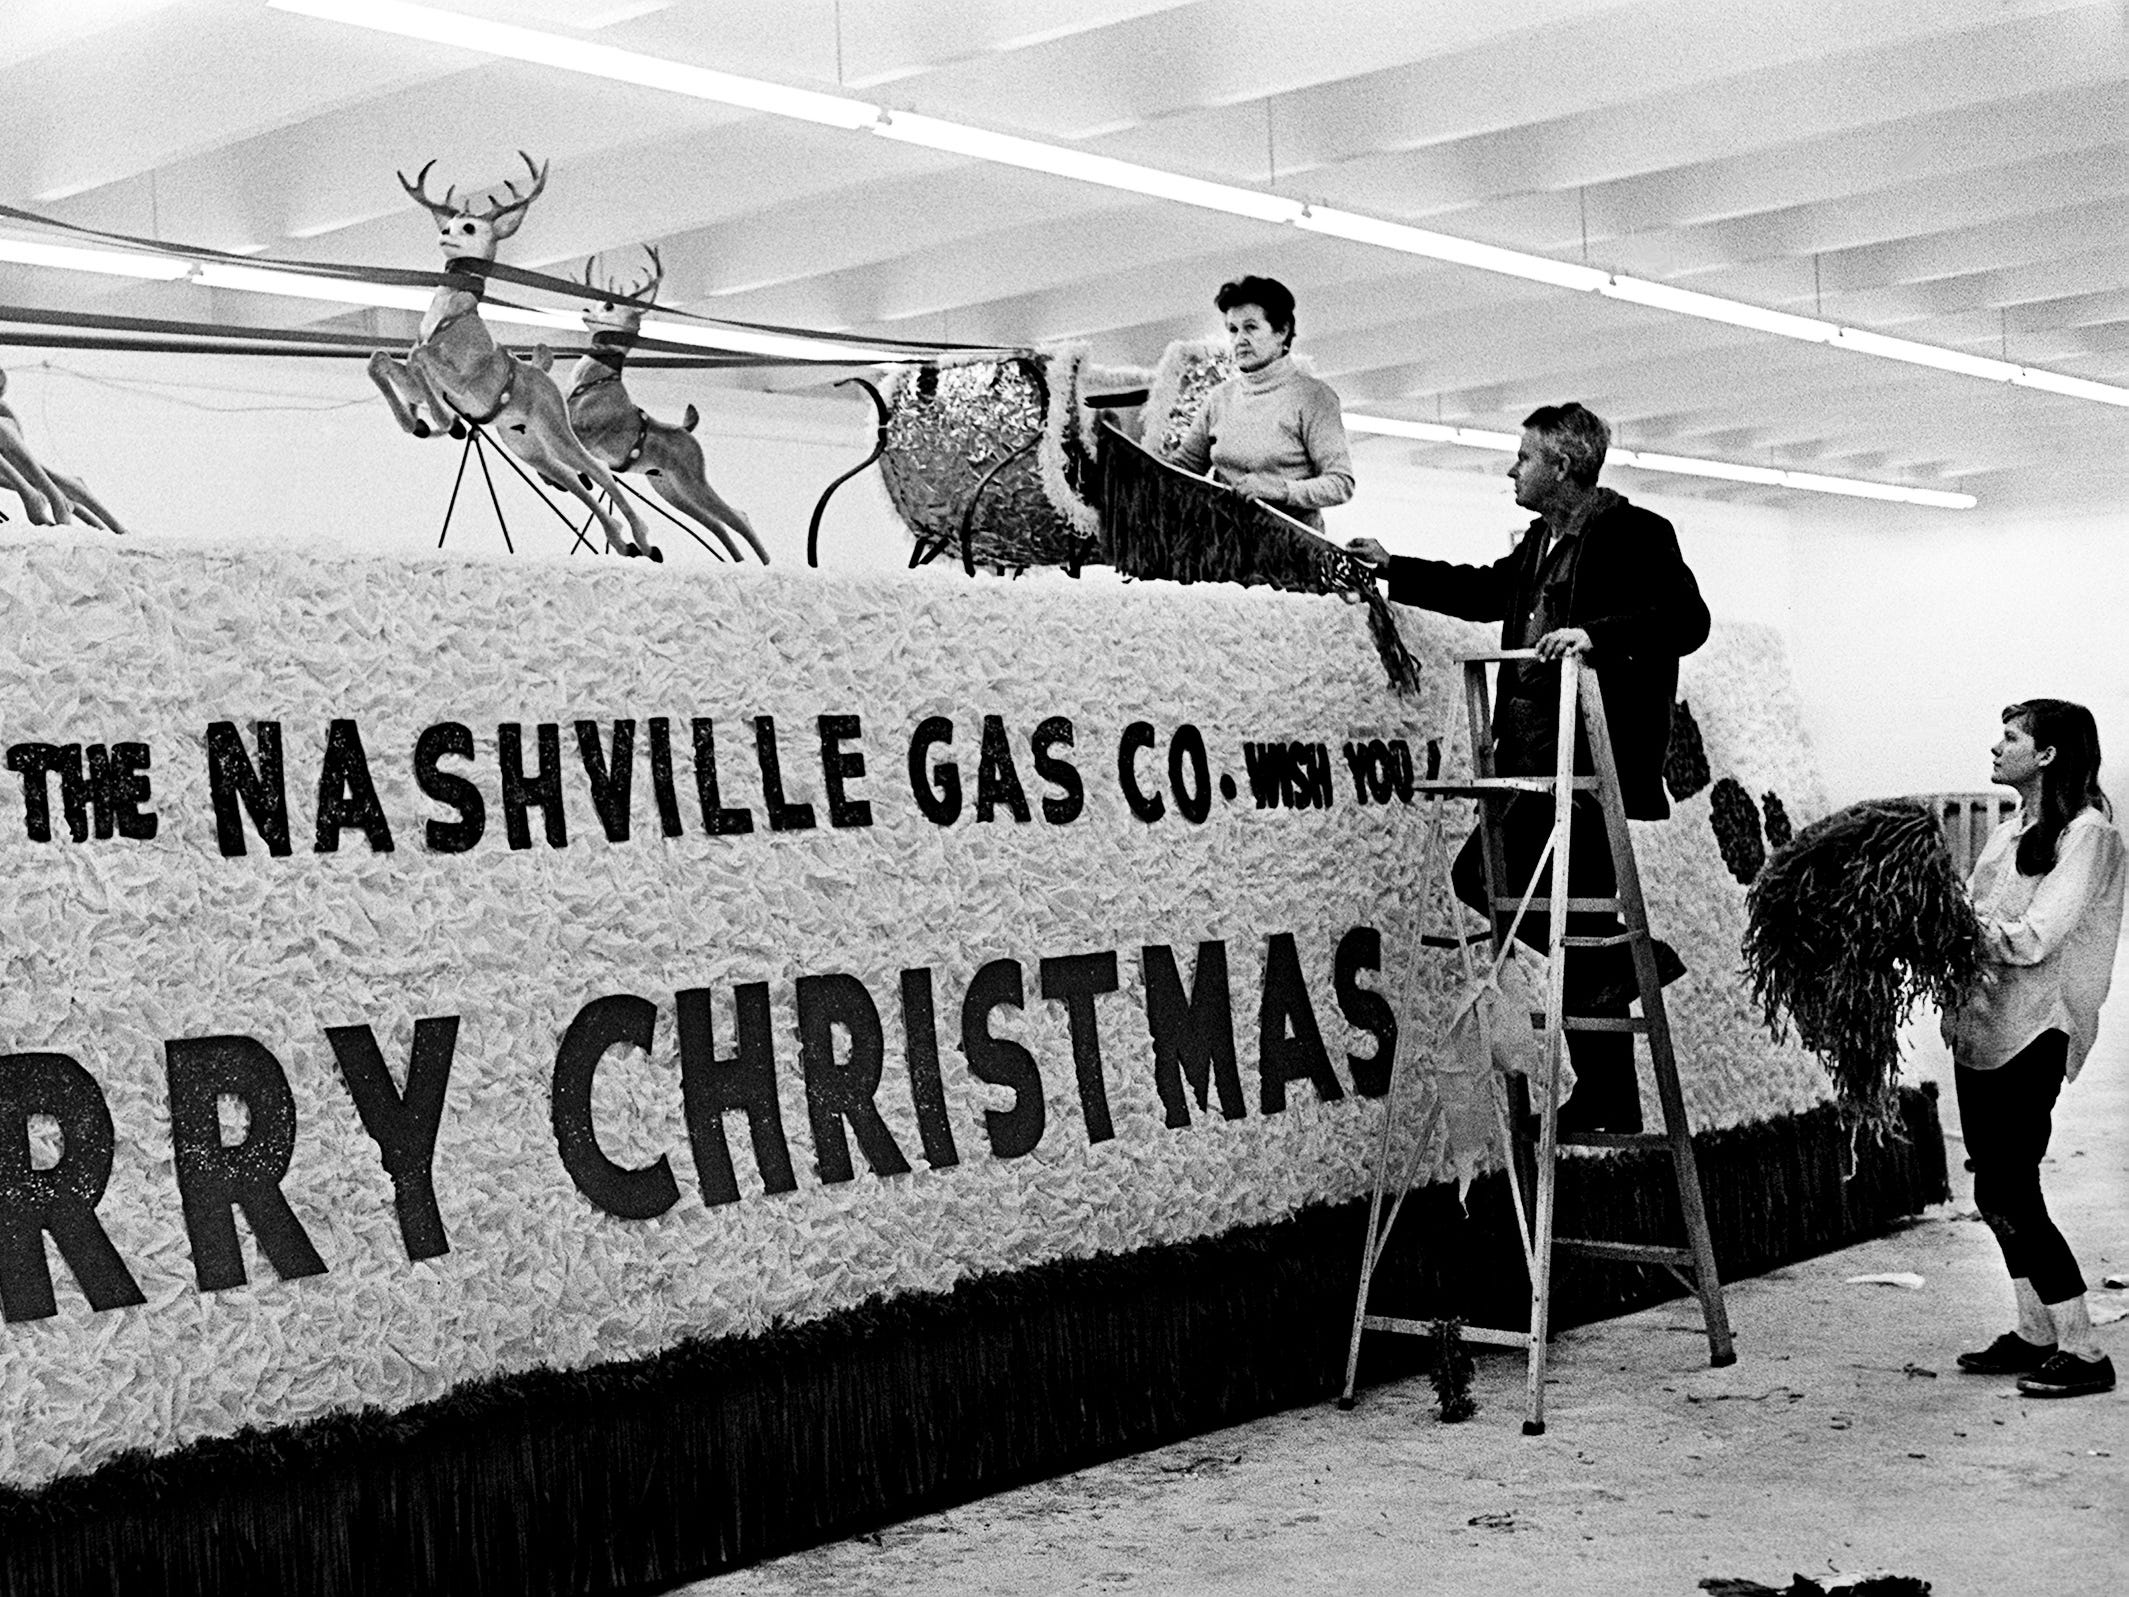 Santa Claus will ride atop this float when the Nashville Area Chamber of Commerce and the Nashville Gas Co. co-sponsor the 16th edition of the Nashville Christmas Parade. On the ladder at the fairgrounds Dec. 5, 1968, is Paul Stalls of Clarksville, a professional parade decorator. His assistants are Martha Utermarck, left, and Mary Ann Kennon, both of Clarksville.